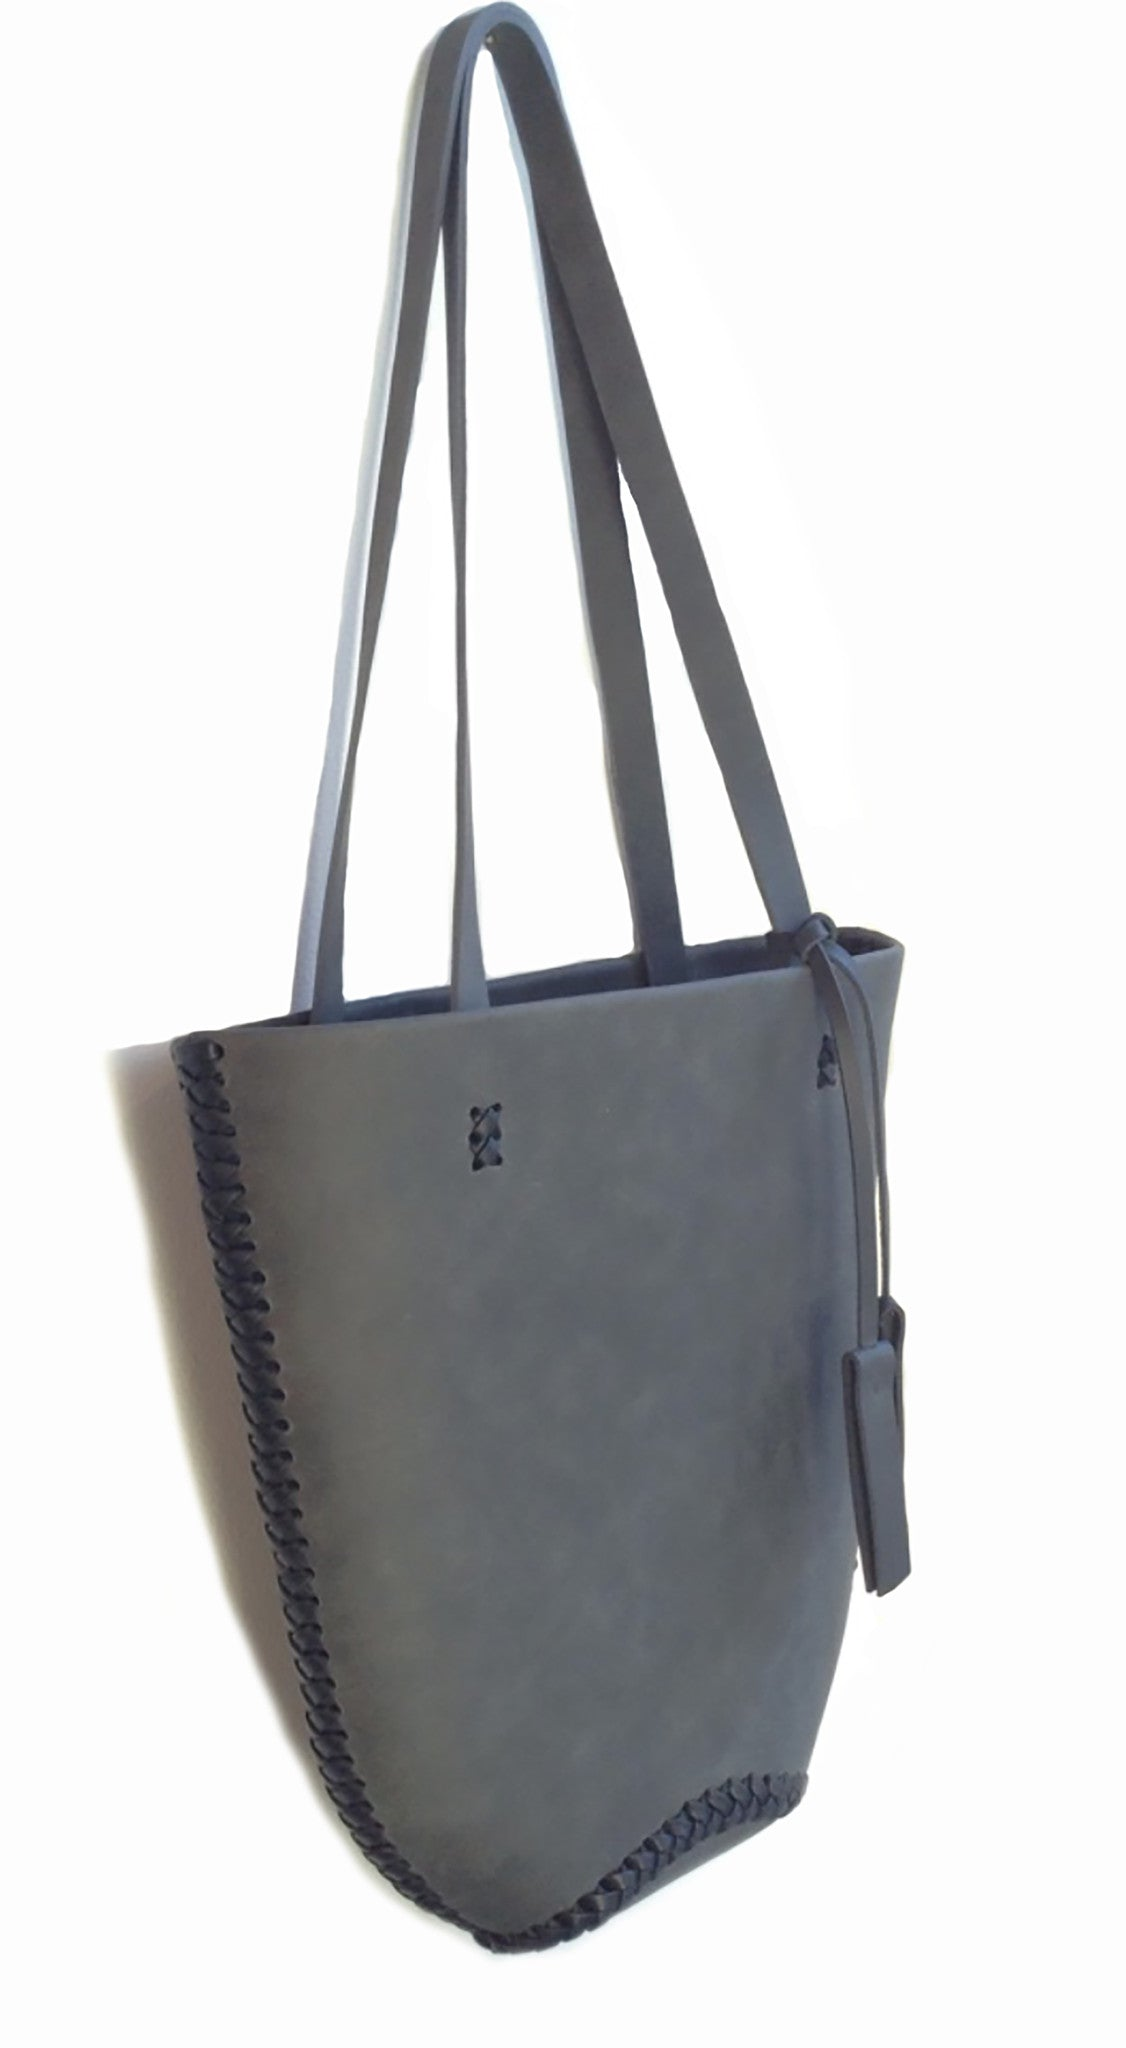 Gray Grey Horse Vegetable Tanned Leather Mini Tote Wendy Nichol Handbag bag Purse Designer Handmade in NYC New York City  braided Basket Everyday Simple Durable Light Medium Tote Eco Leather High Quality Leather